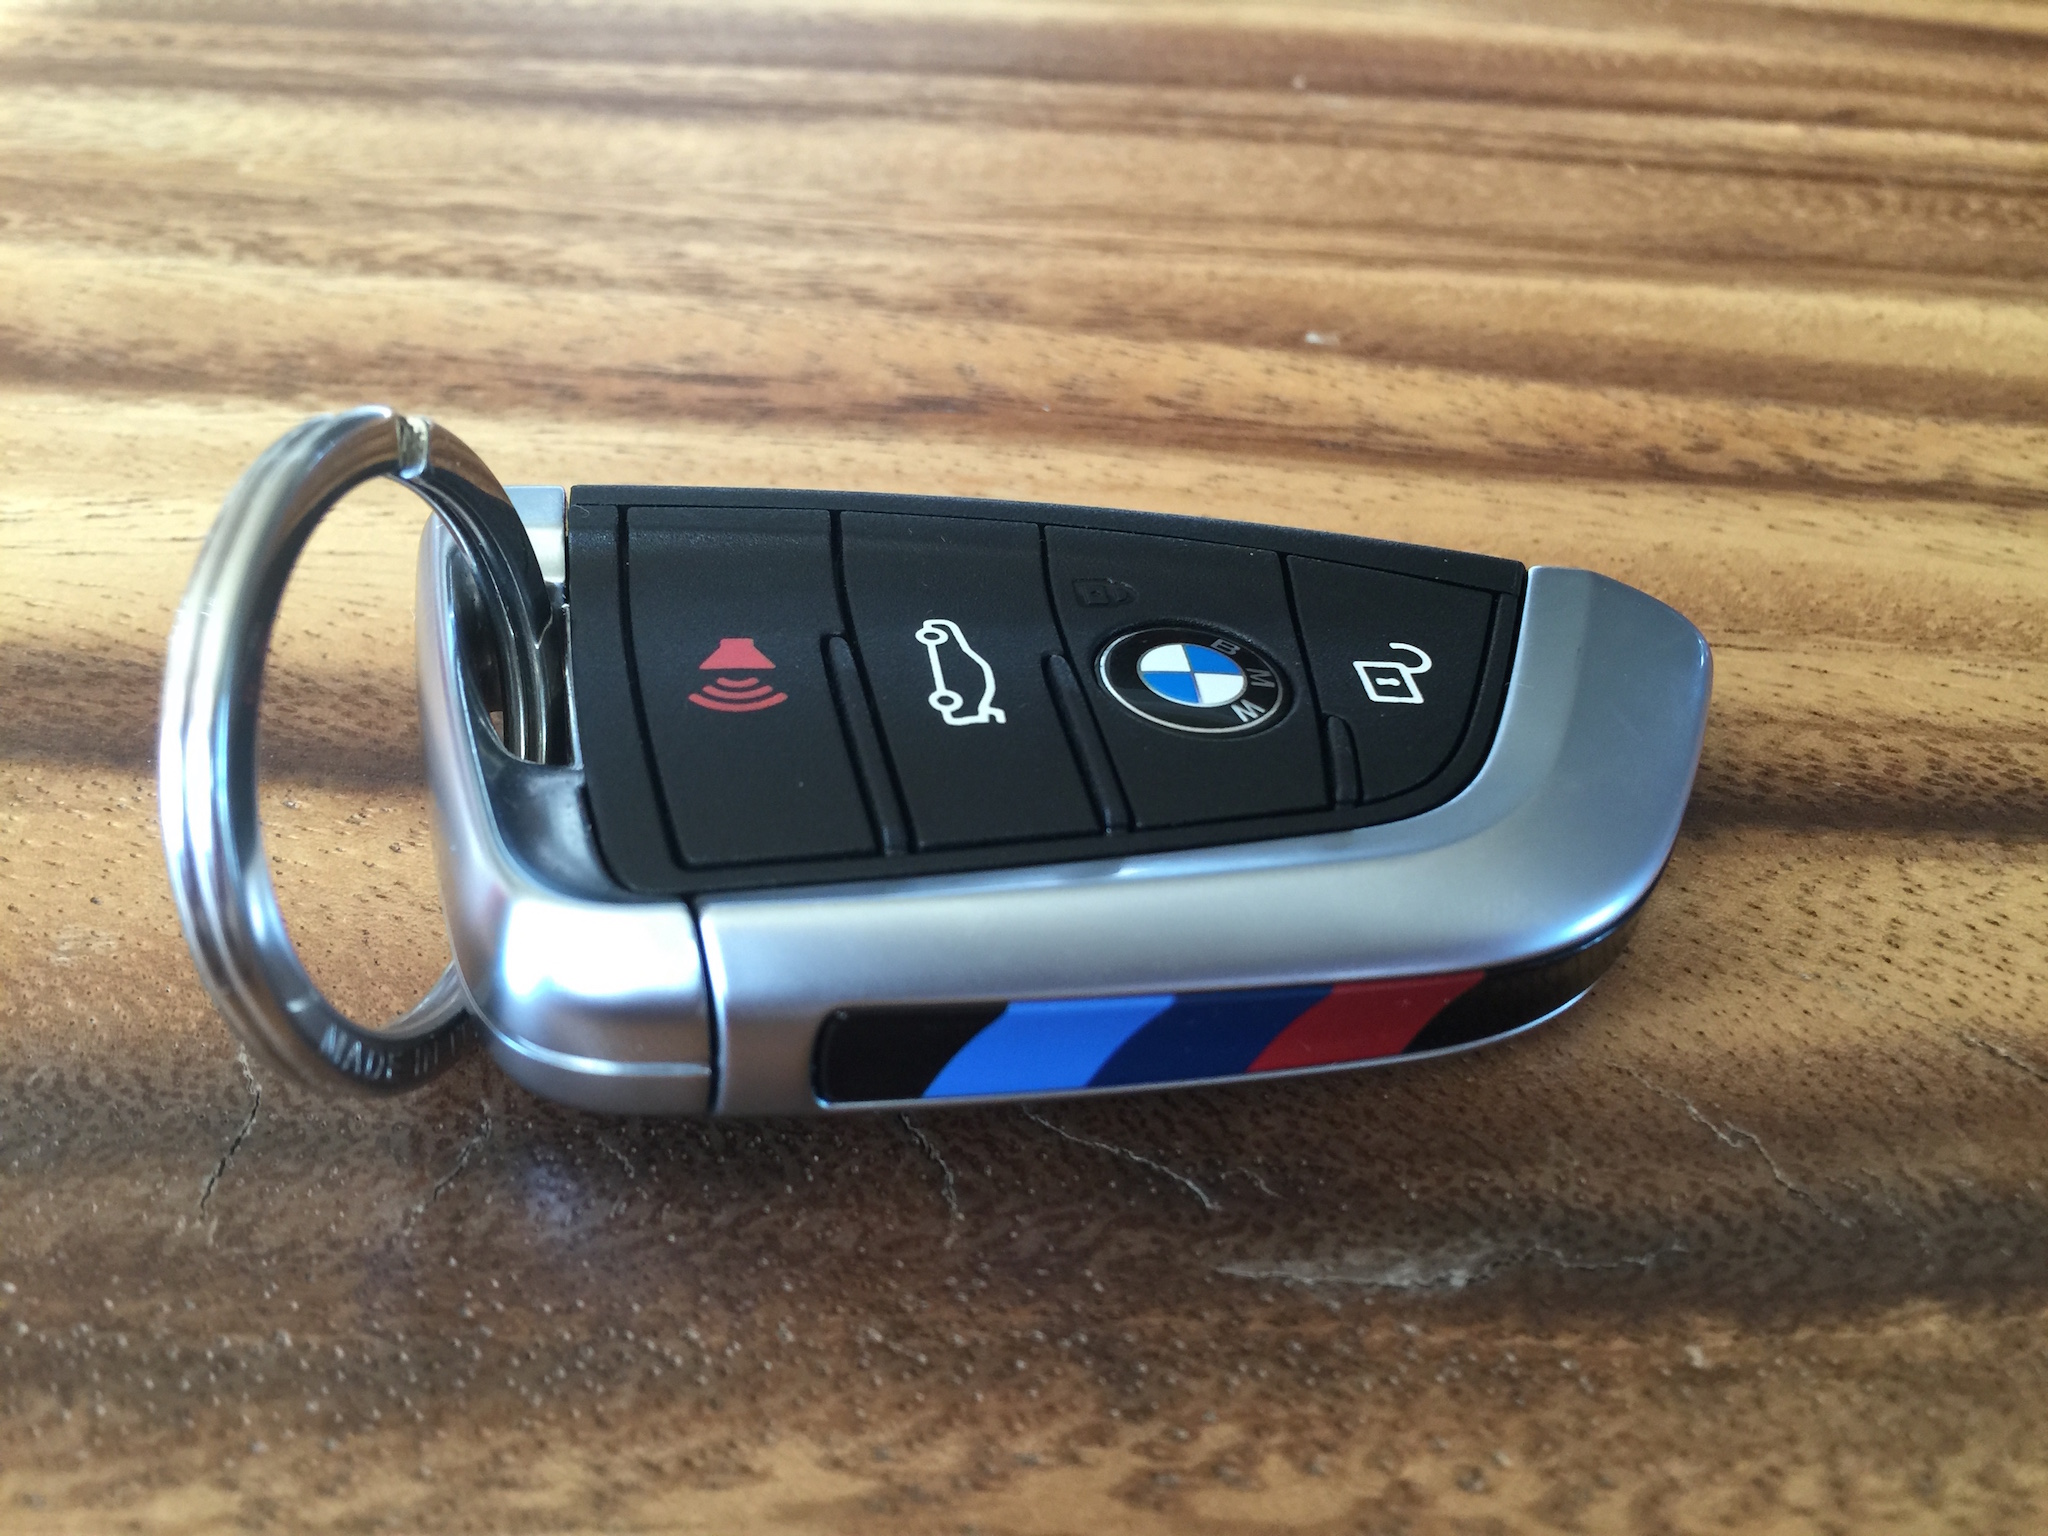 wireless interior stock depositphotos keys car photo in up close black bmw leather of